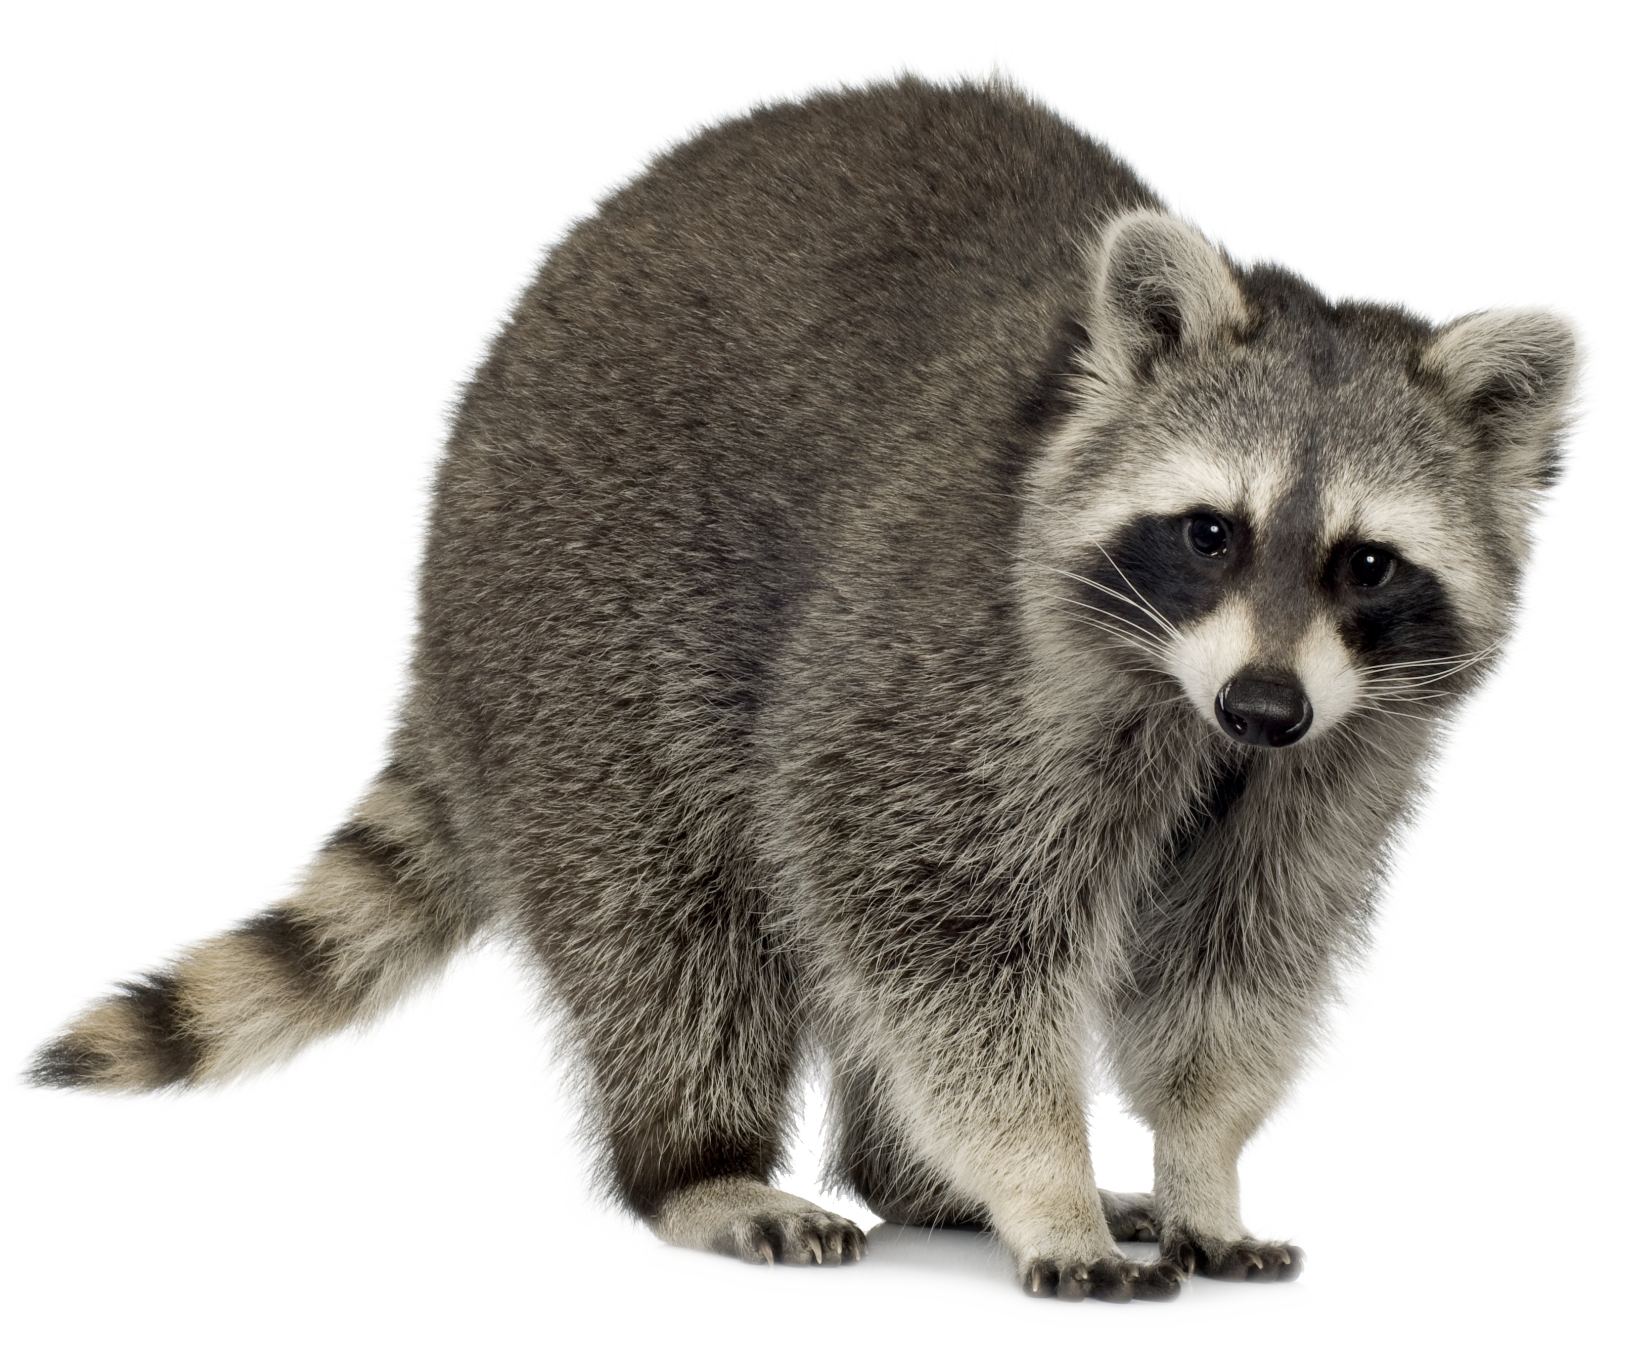 Draw House Plans Raccoons In Suburbia Utah Stories